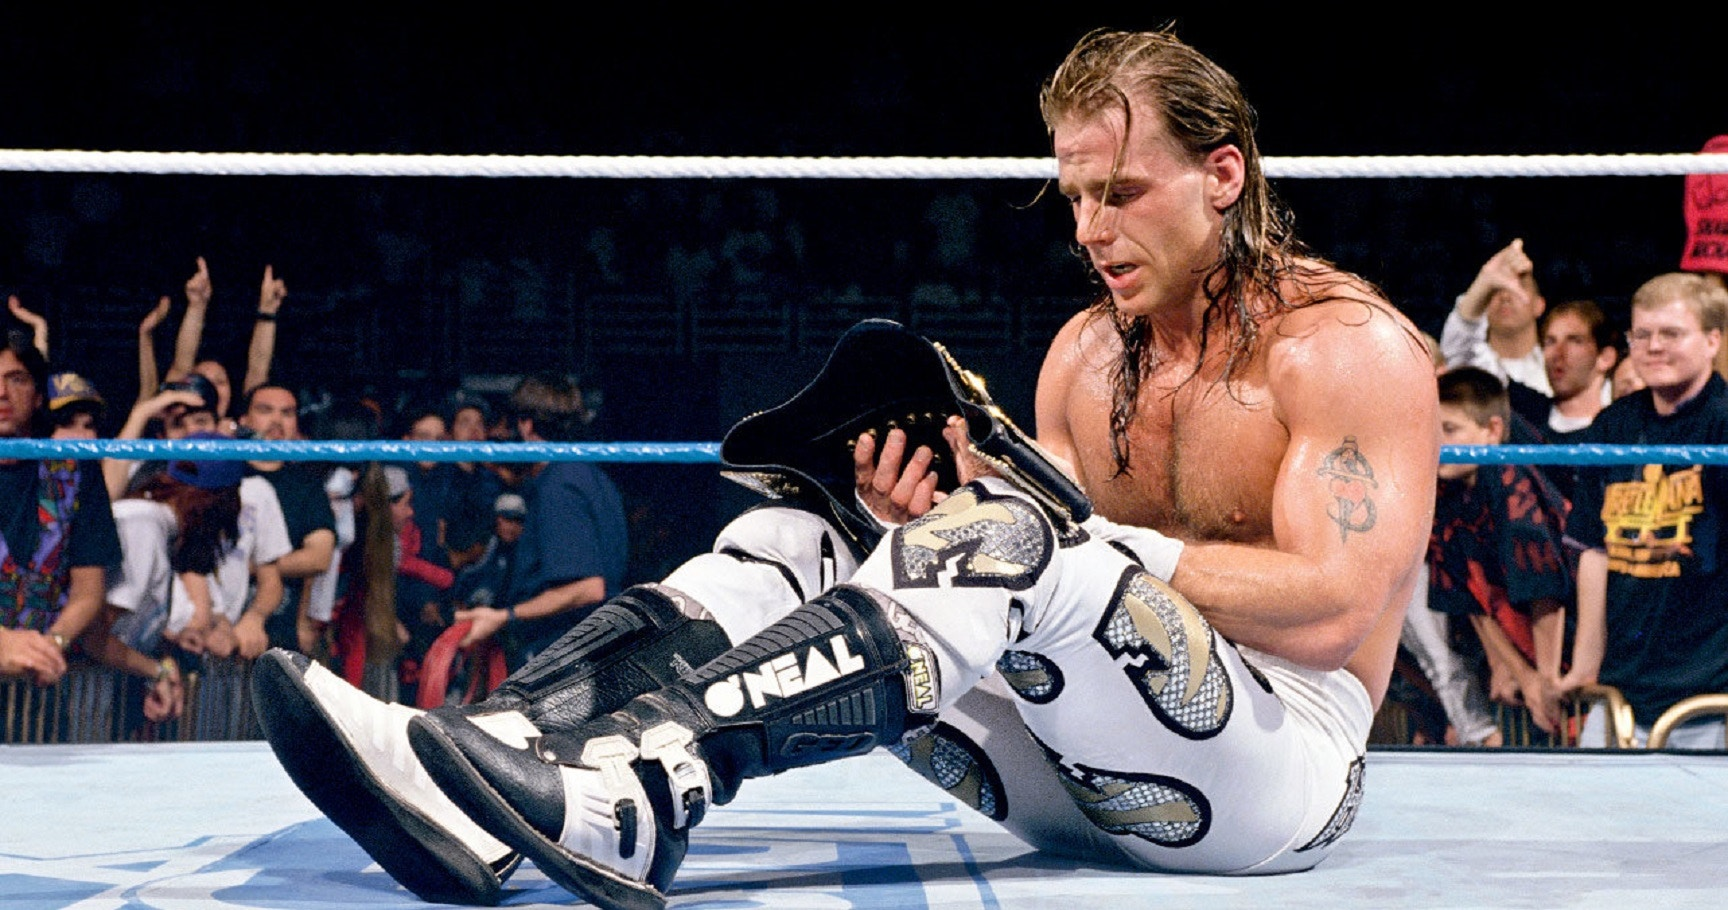 Beyond the athlete hbk shawn michaels back sports page think pro wrestling think hulk hogan the rock andre the giant and stone cold steve austin hbk burst onto the m4hsunfo